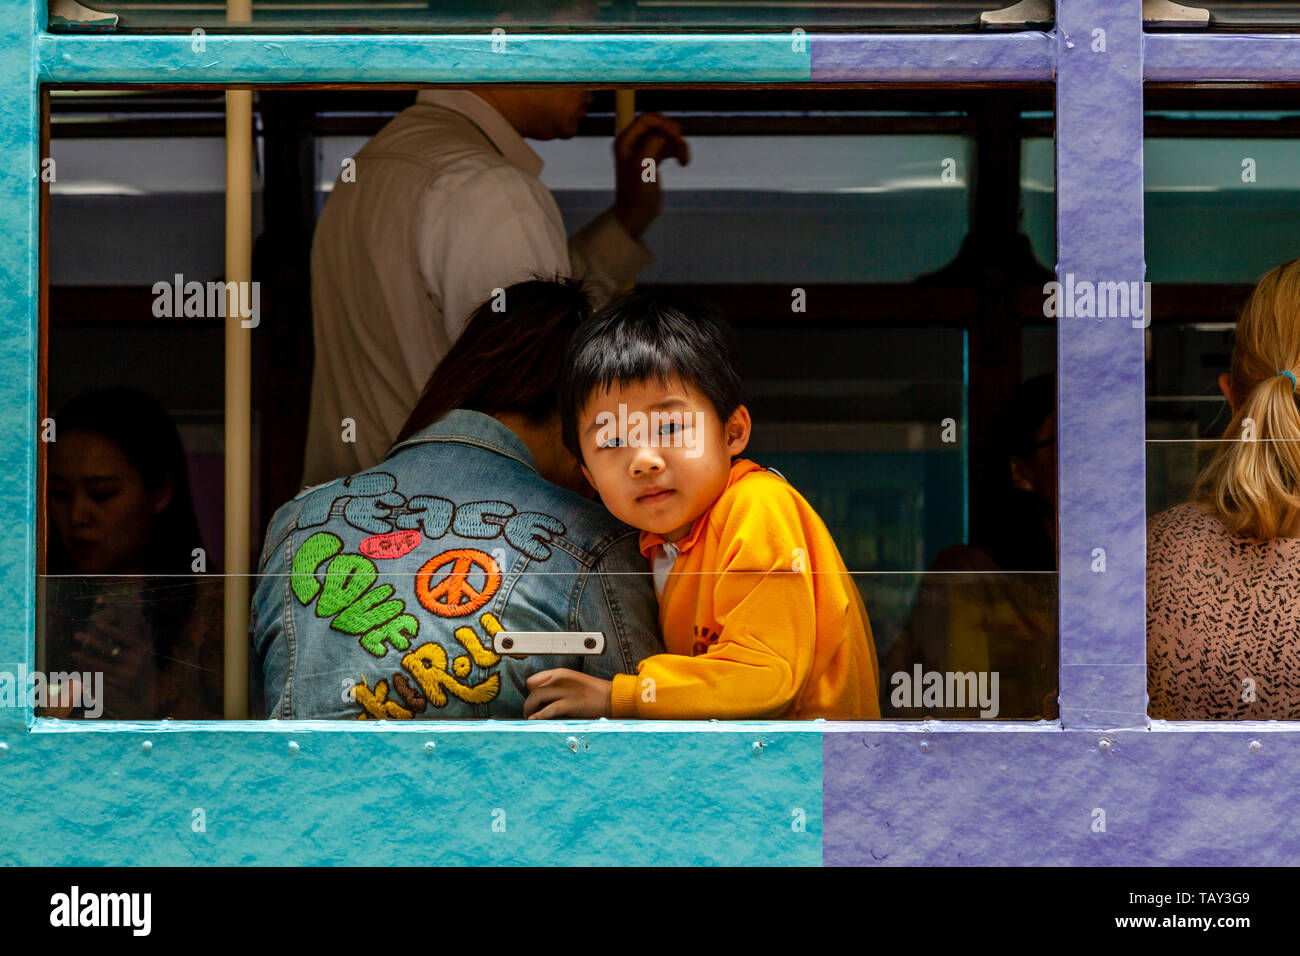 A Young Boy Looks Out Of The Window Of A Traditional Hong Kong Electric Tram, Hong Kong, China - Stock Image